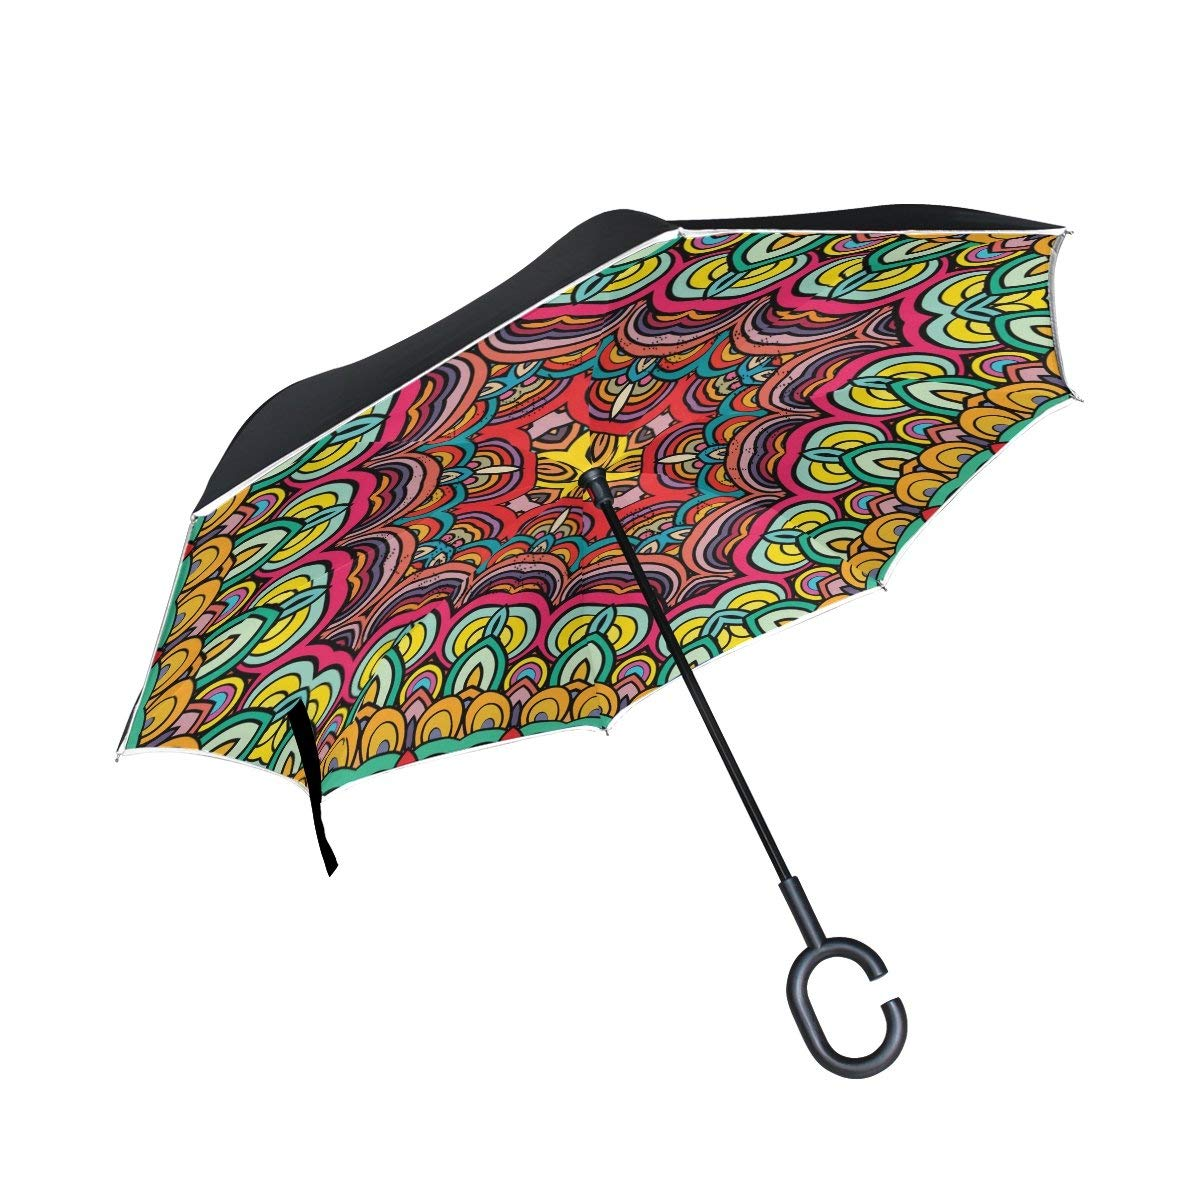 ALAZA Double Layer Inverted Reverse Umbrella Colorful Geometric Windproof Car Rain C-shapped Handle Automatic